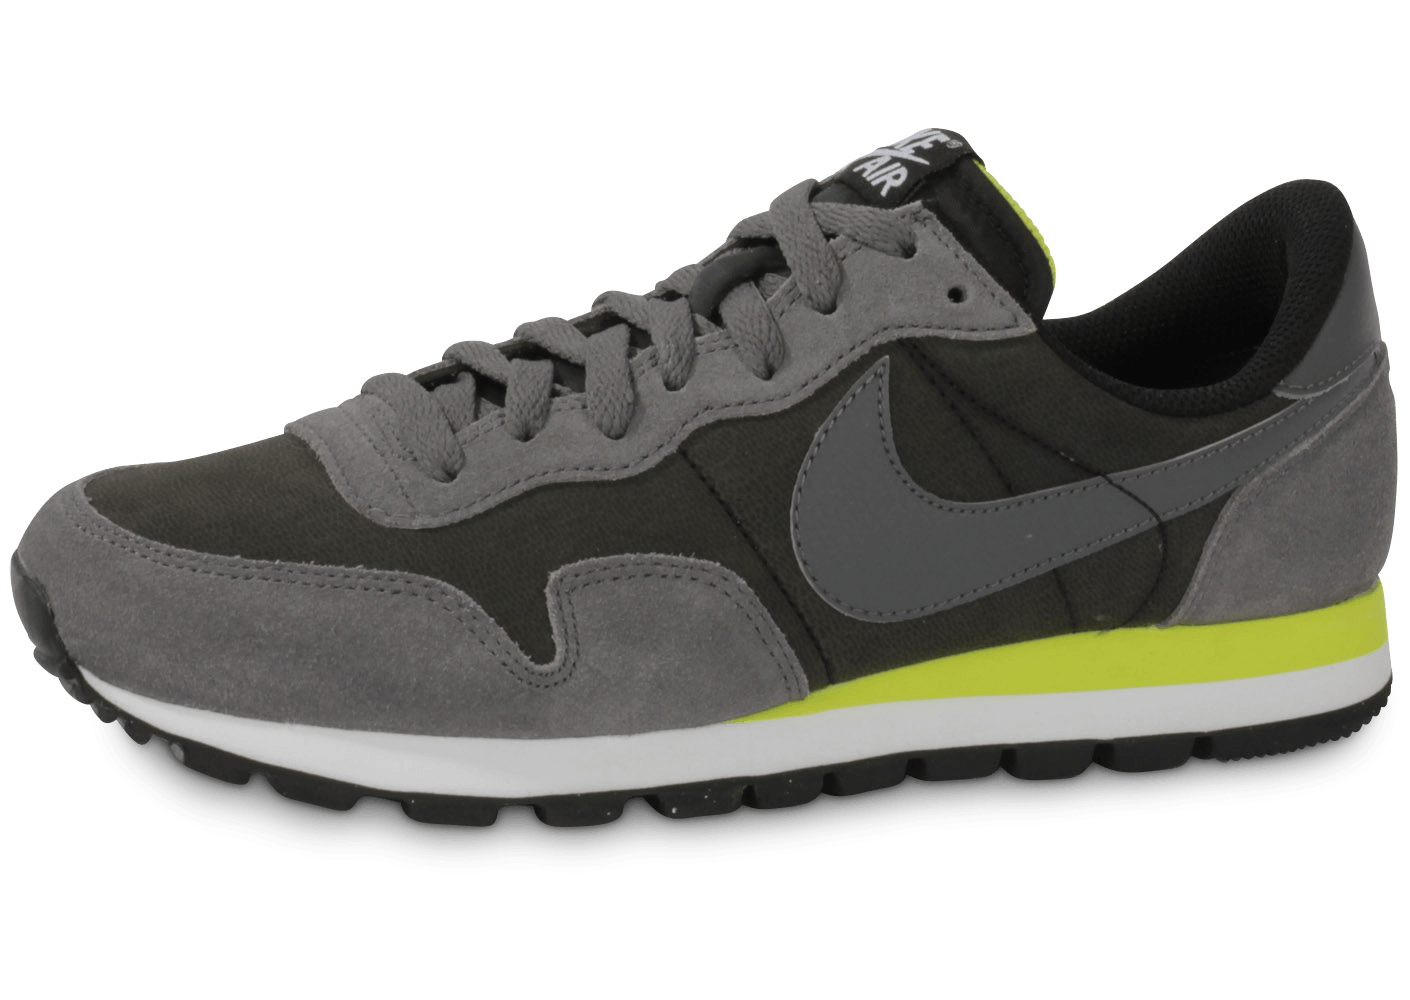 official photos 5fccf dac28 Nike Air Pegasus 83 Noire - Chaussures Baskets homme - Chausport